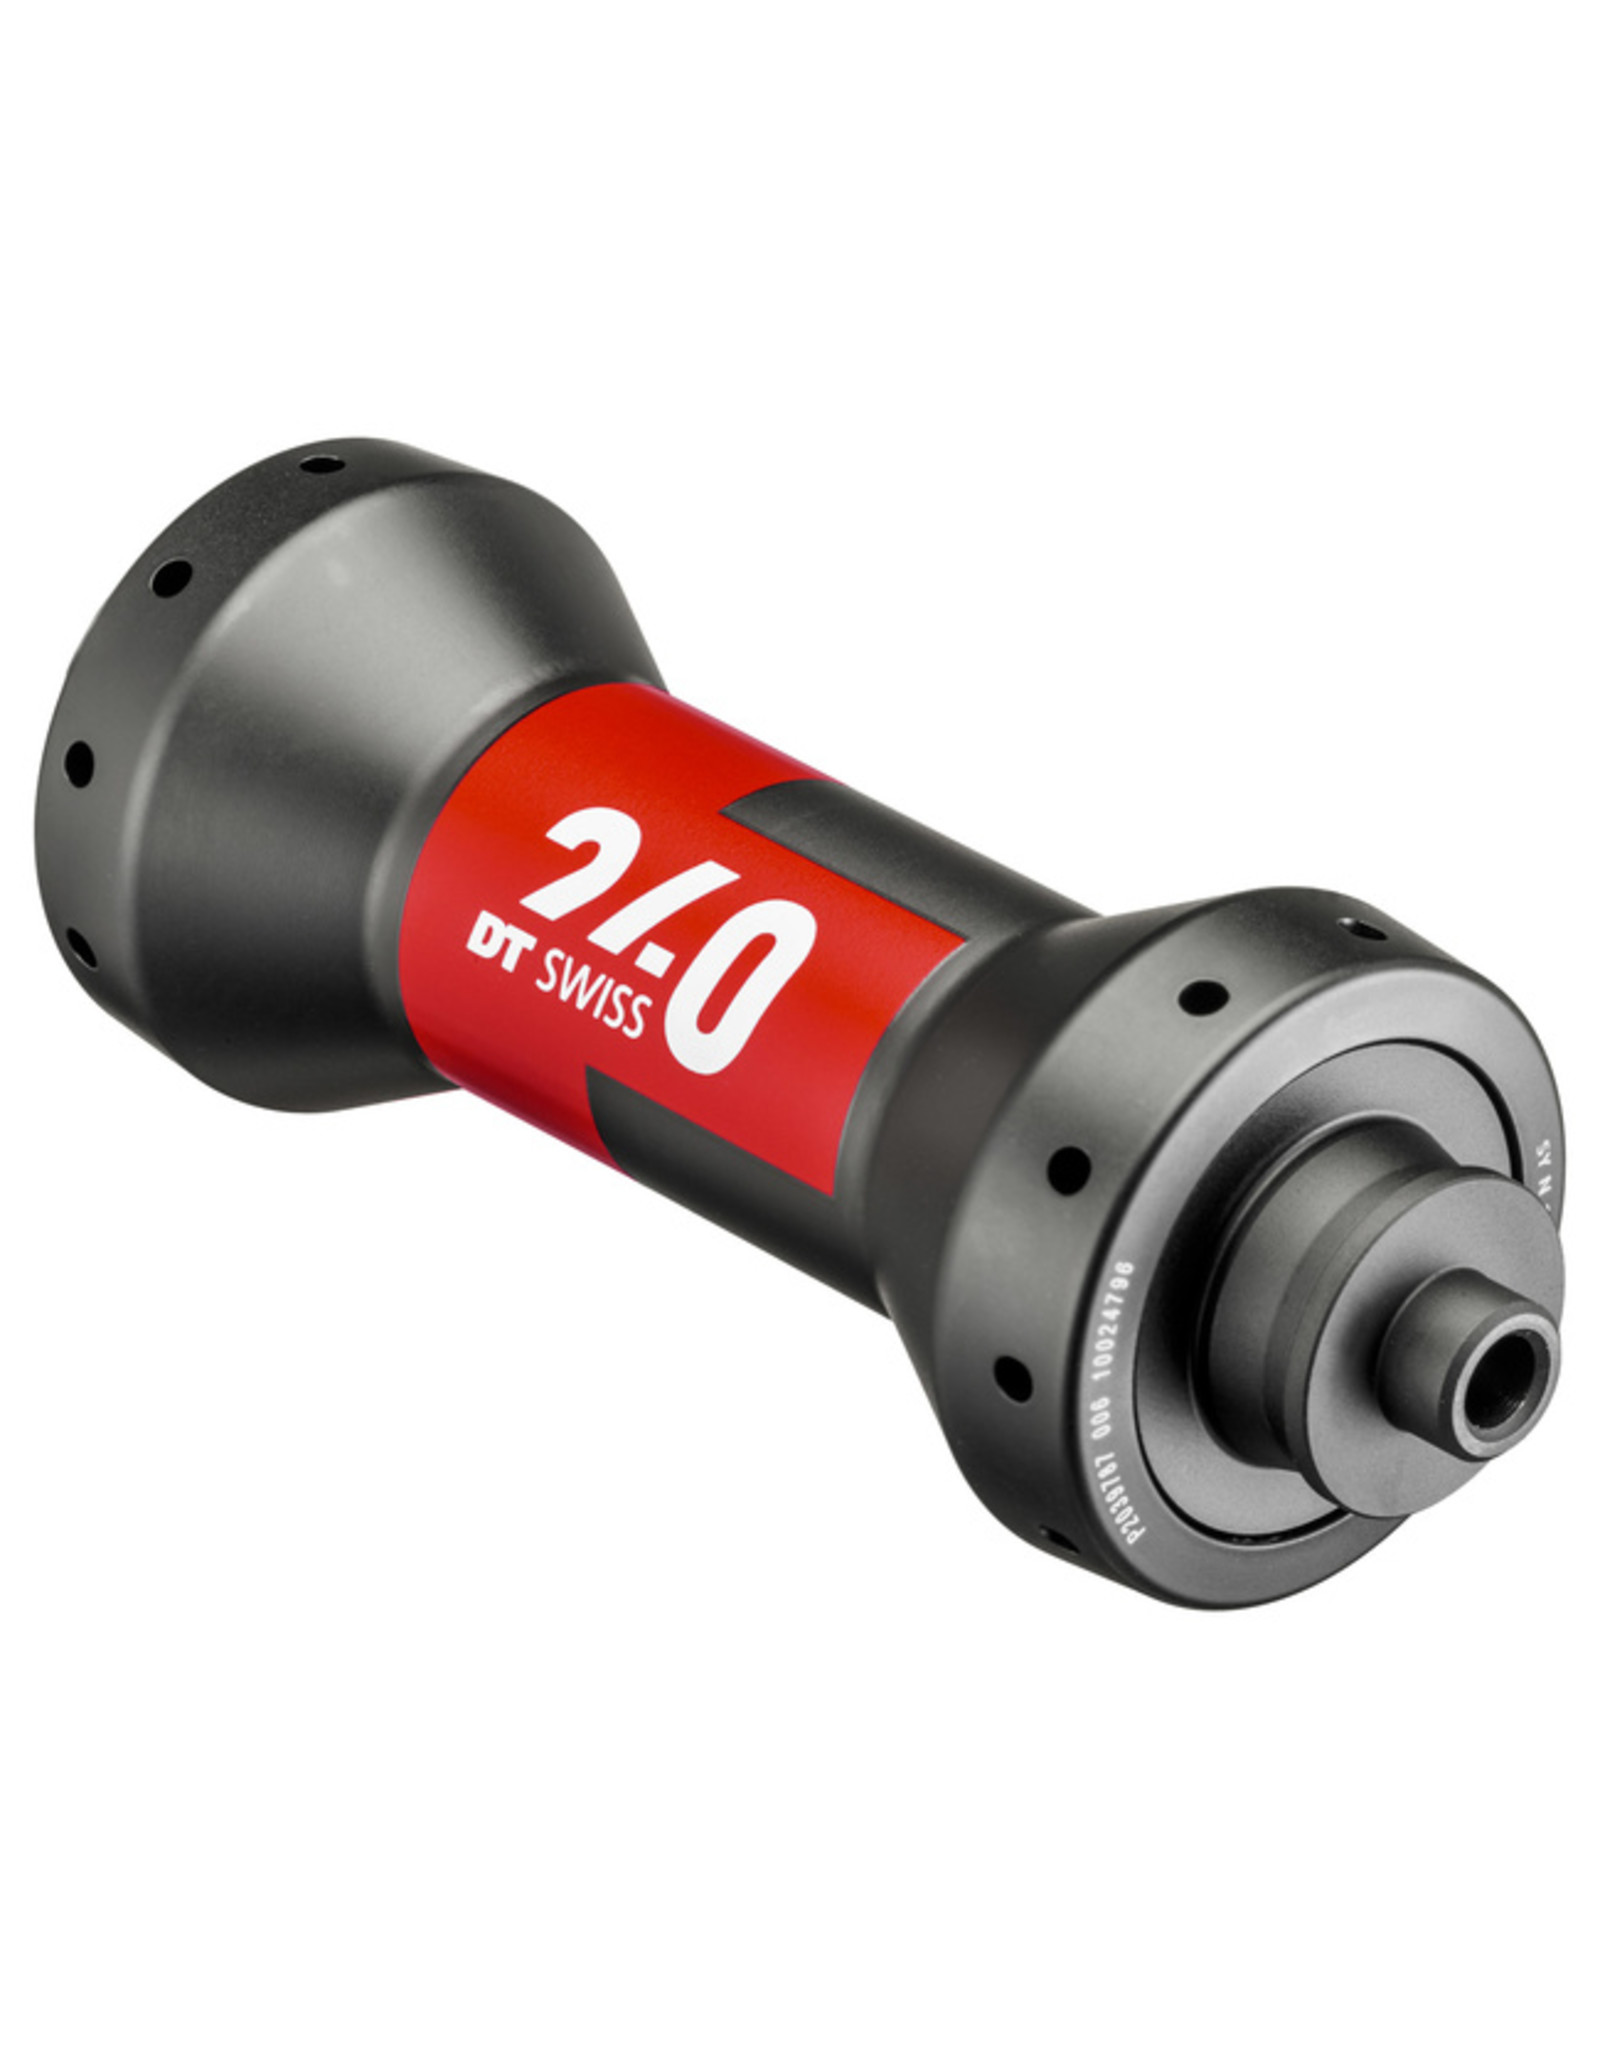 DT Swiss DT Swiss 240 EXP Straight-Pull Road Front Hub 20h